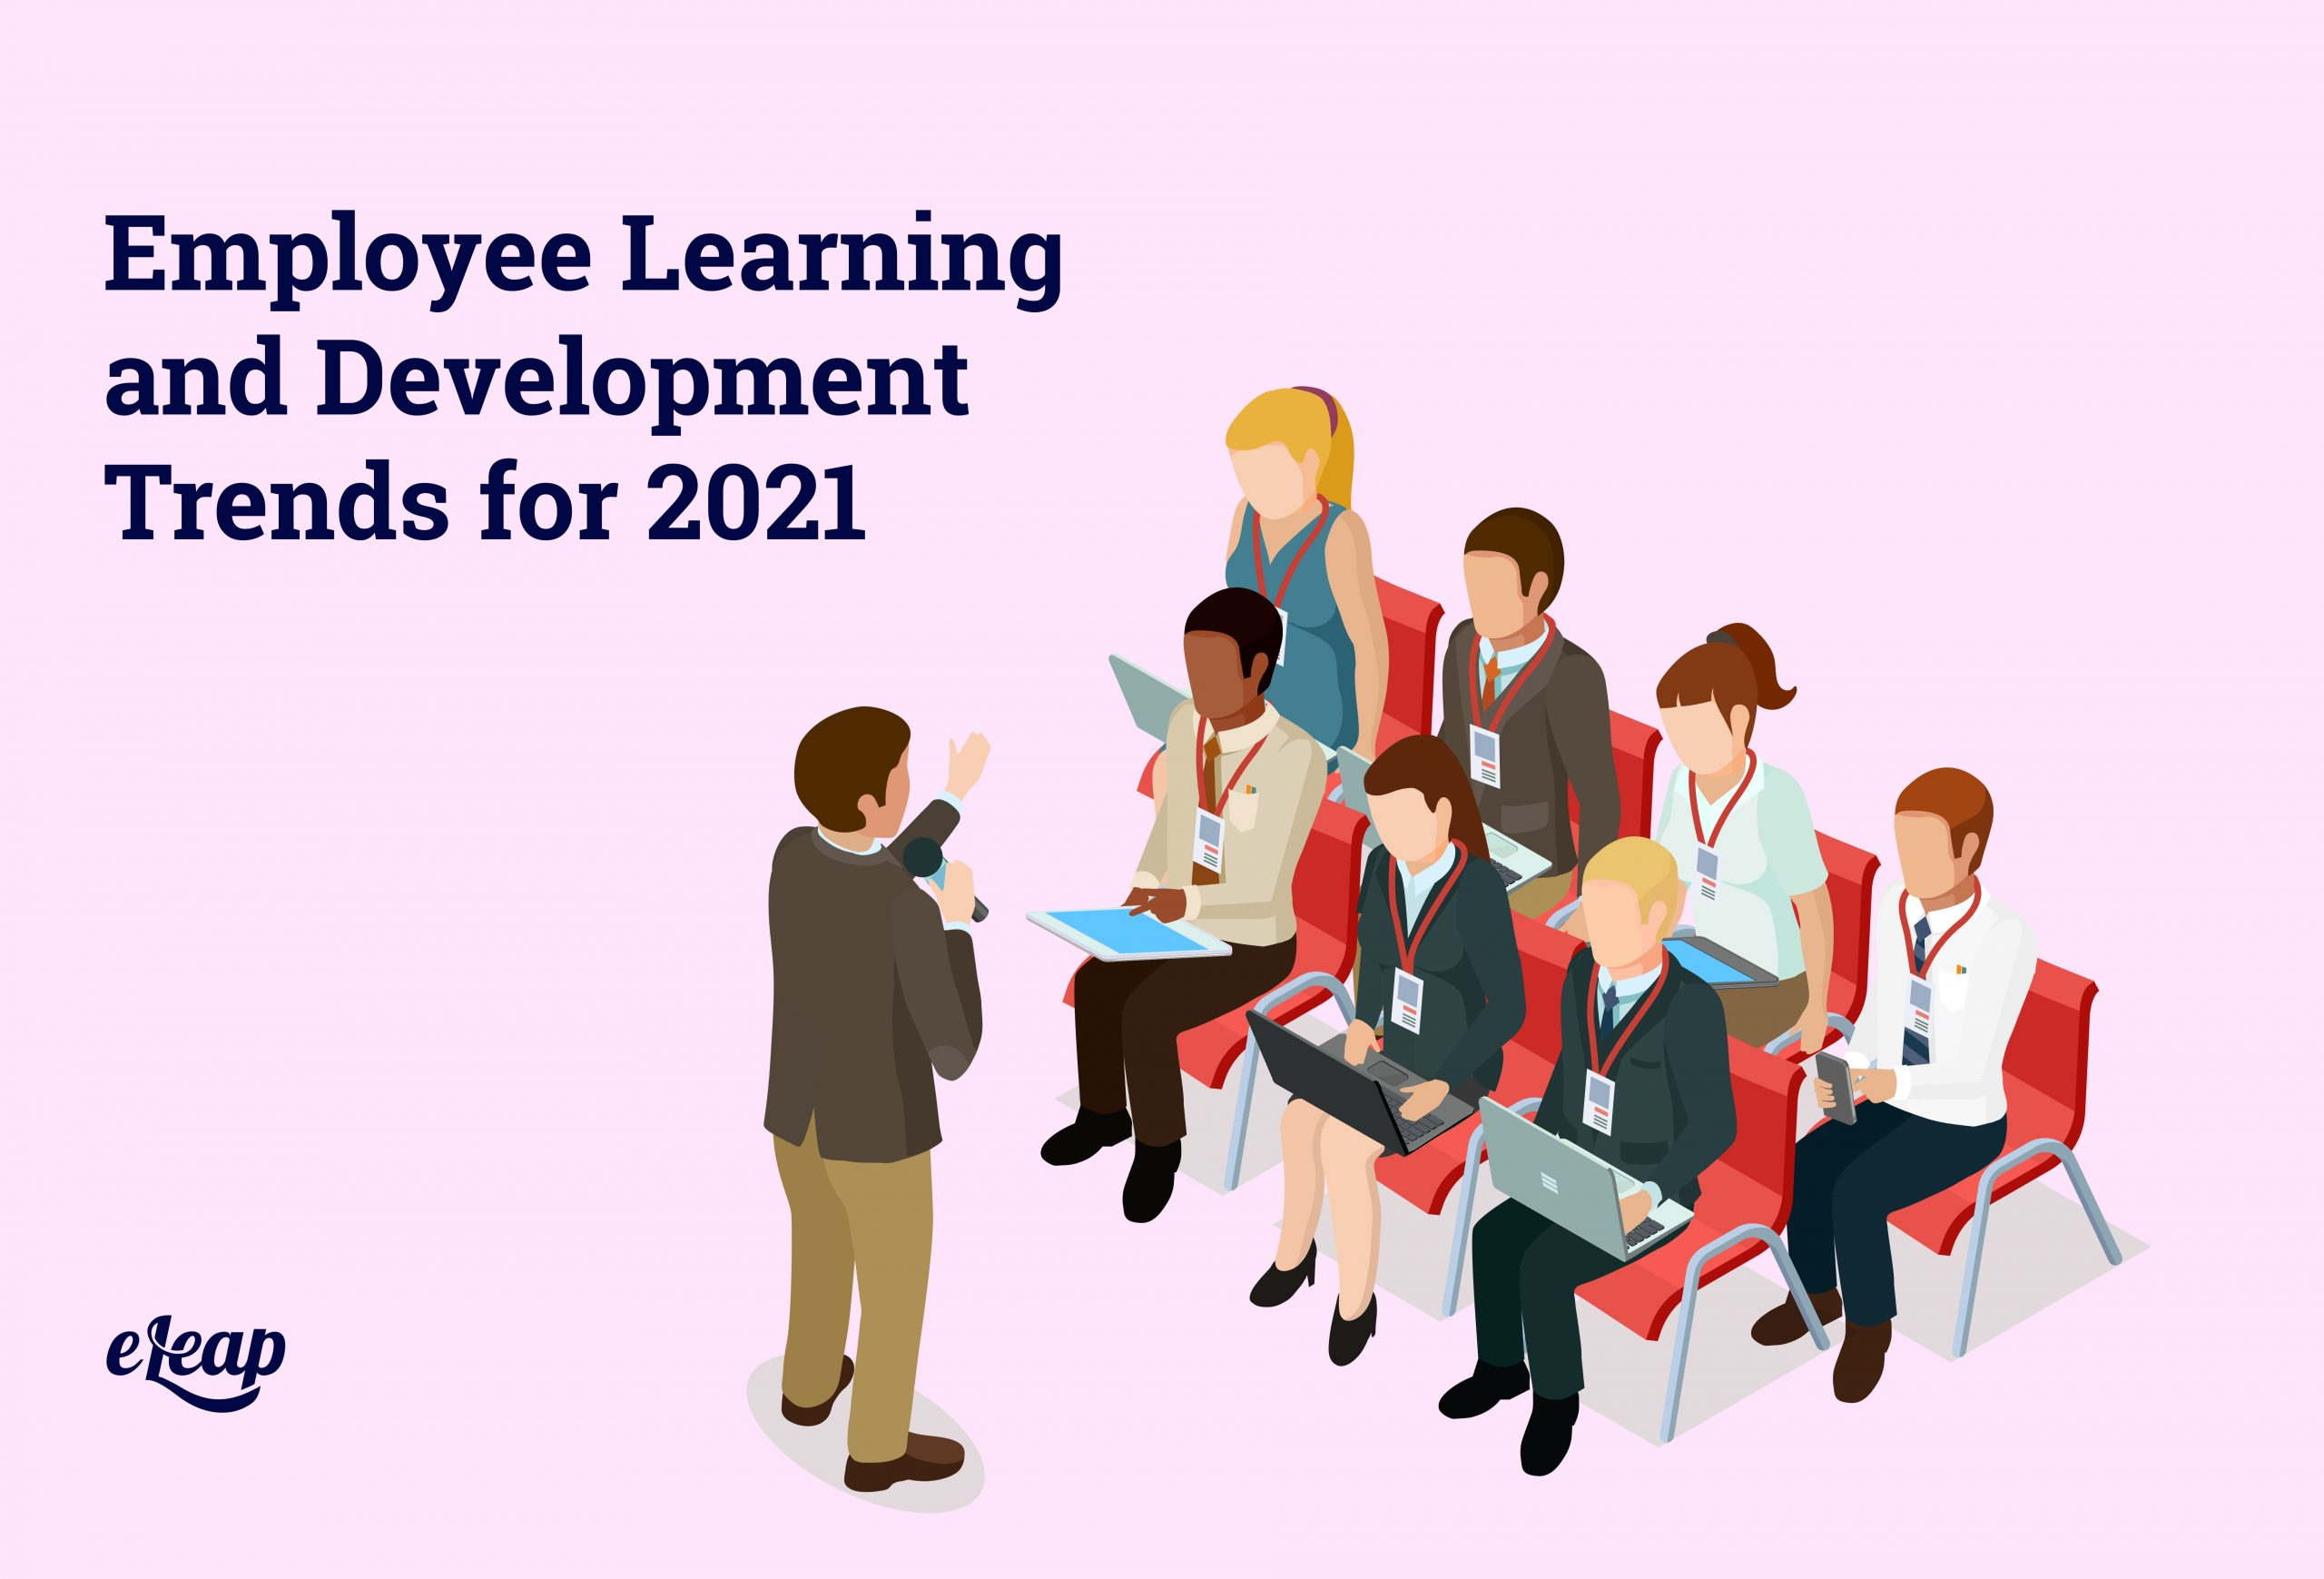 Employee Learning and Development Trends for 2021